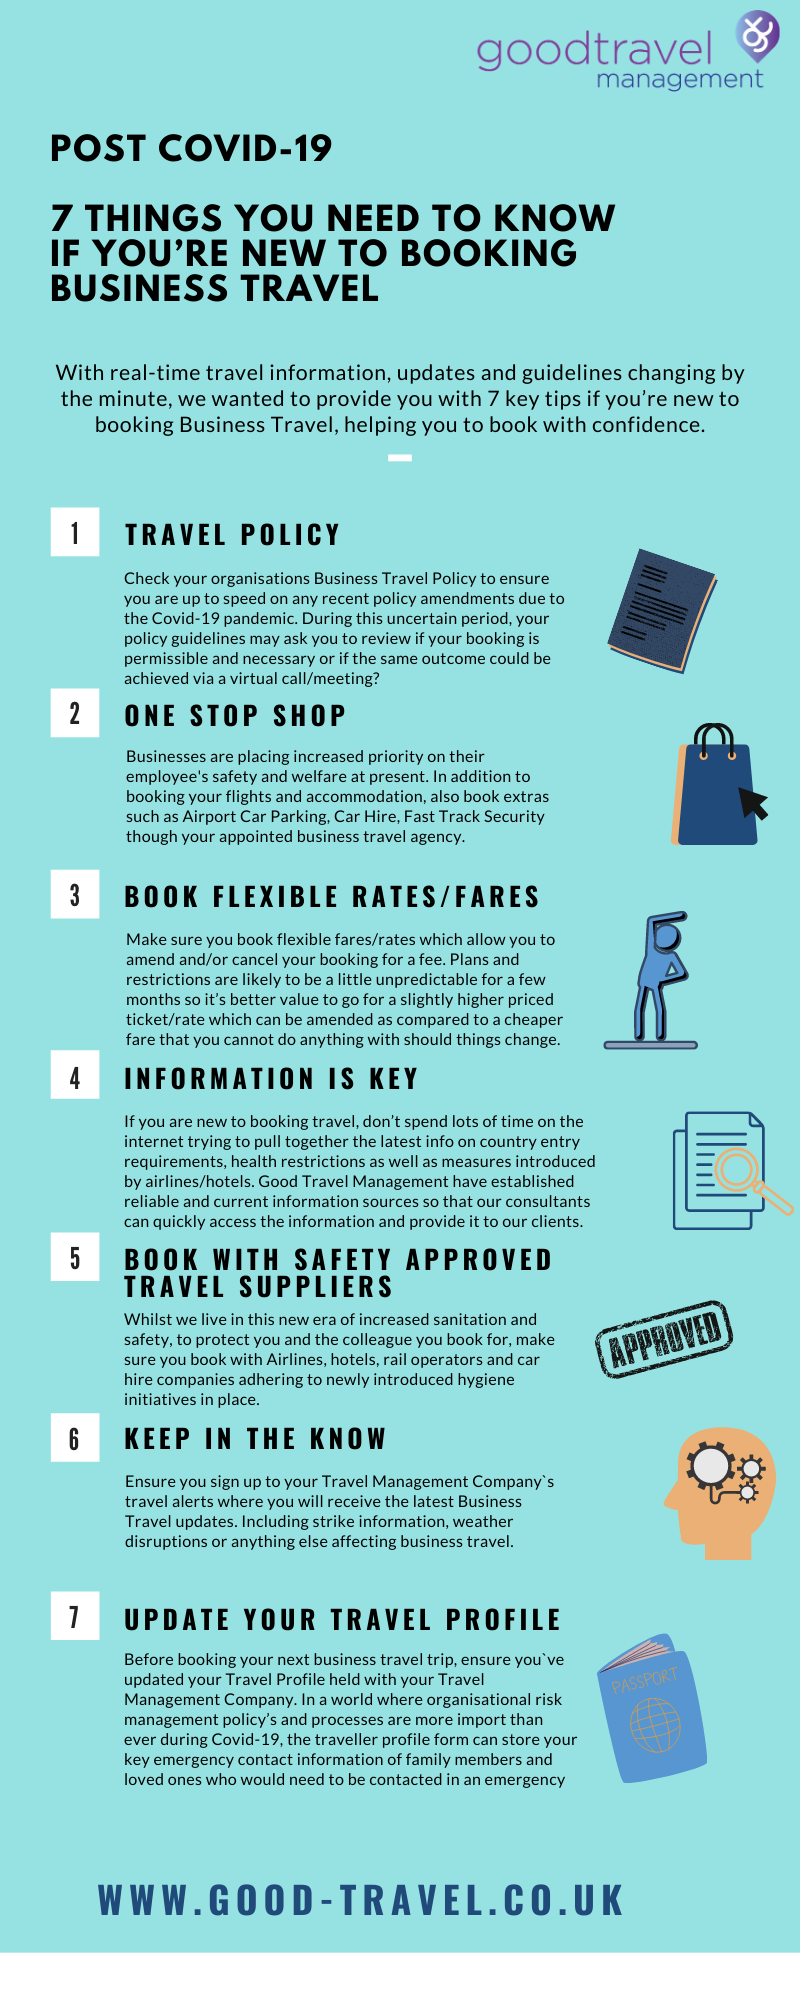 _7 things you need to know if you're new to booking business travel (1)